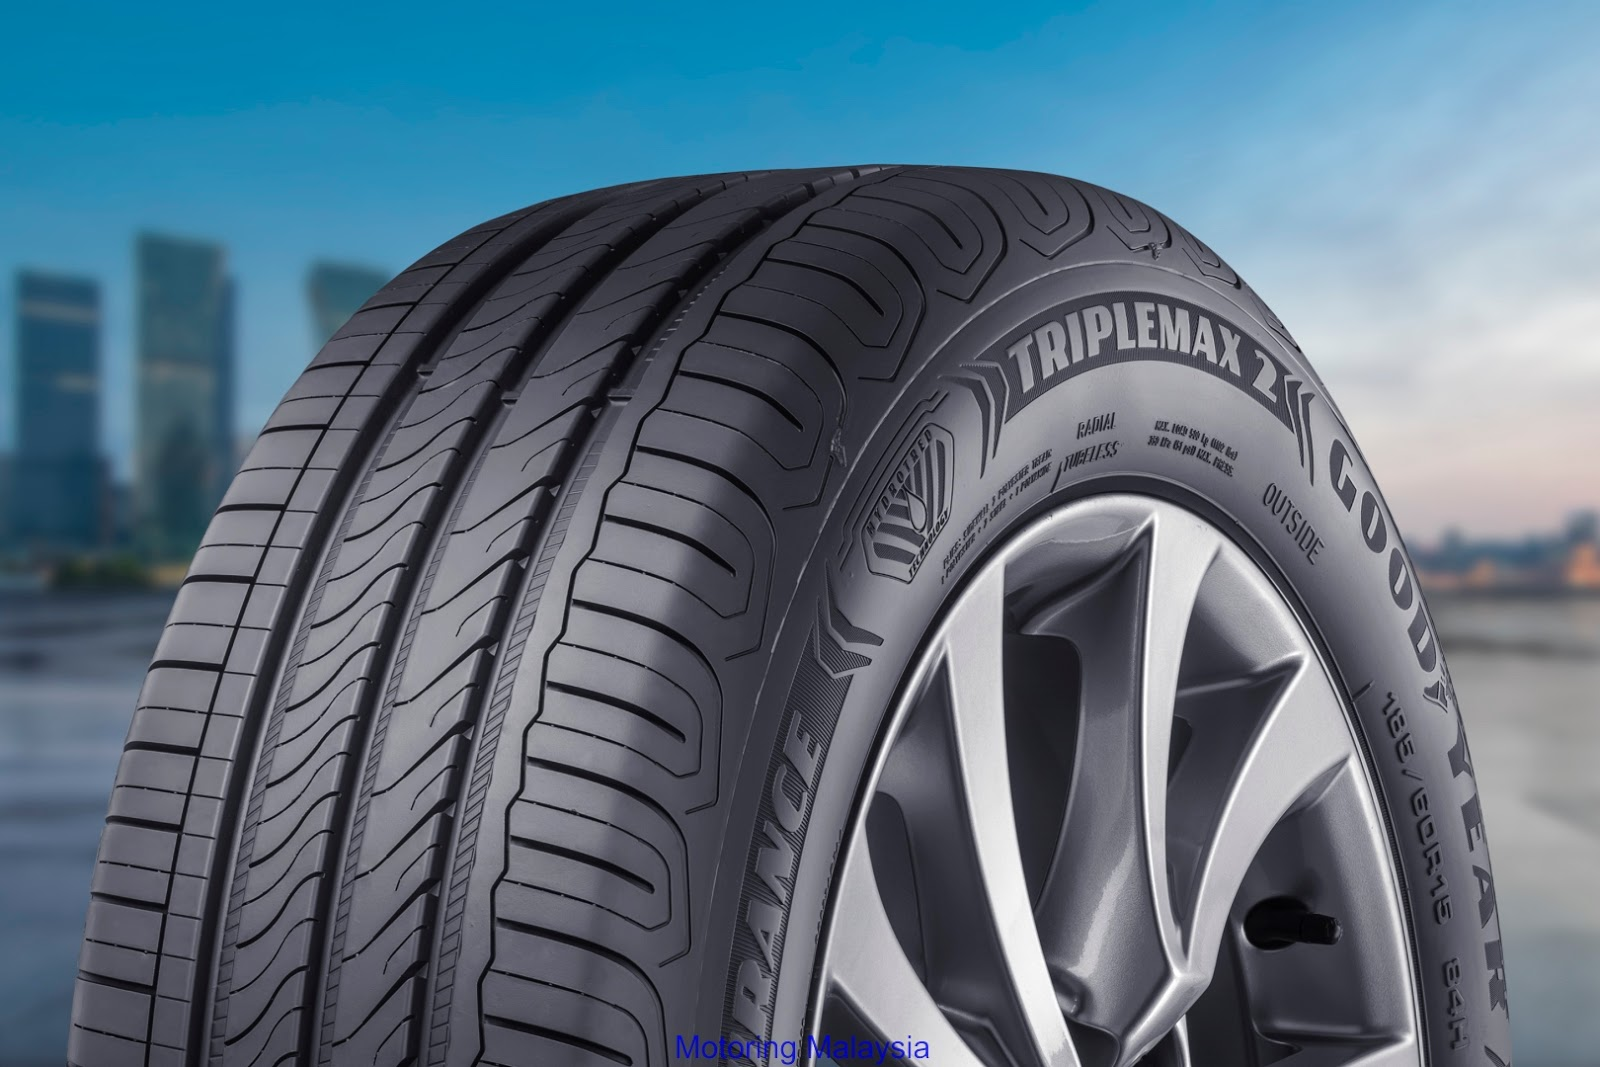 Goodyear Tyres Motoring Malaysia Goodyear Tyres Launches The Assurance Triplemax